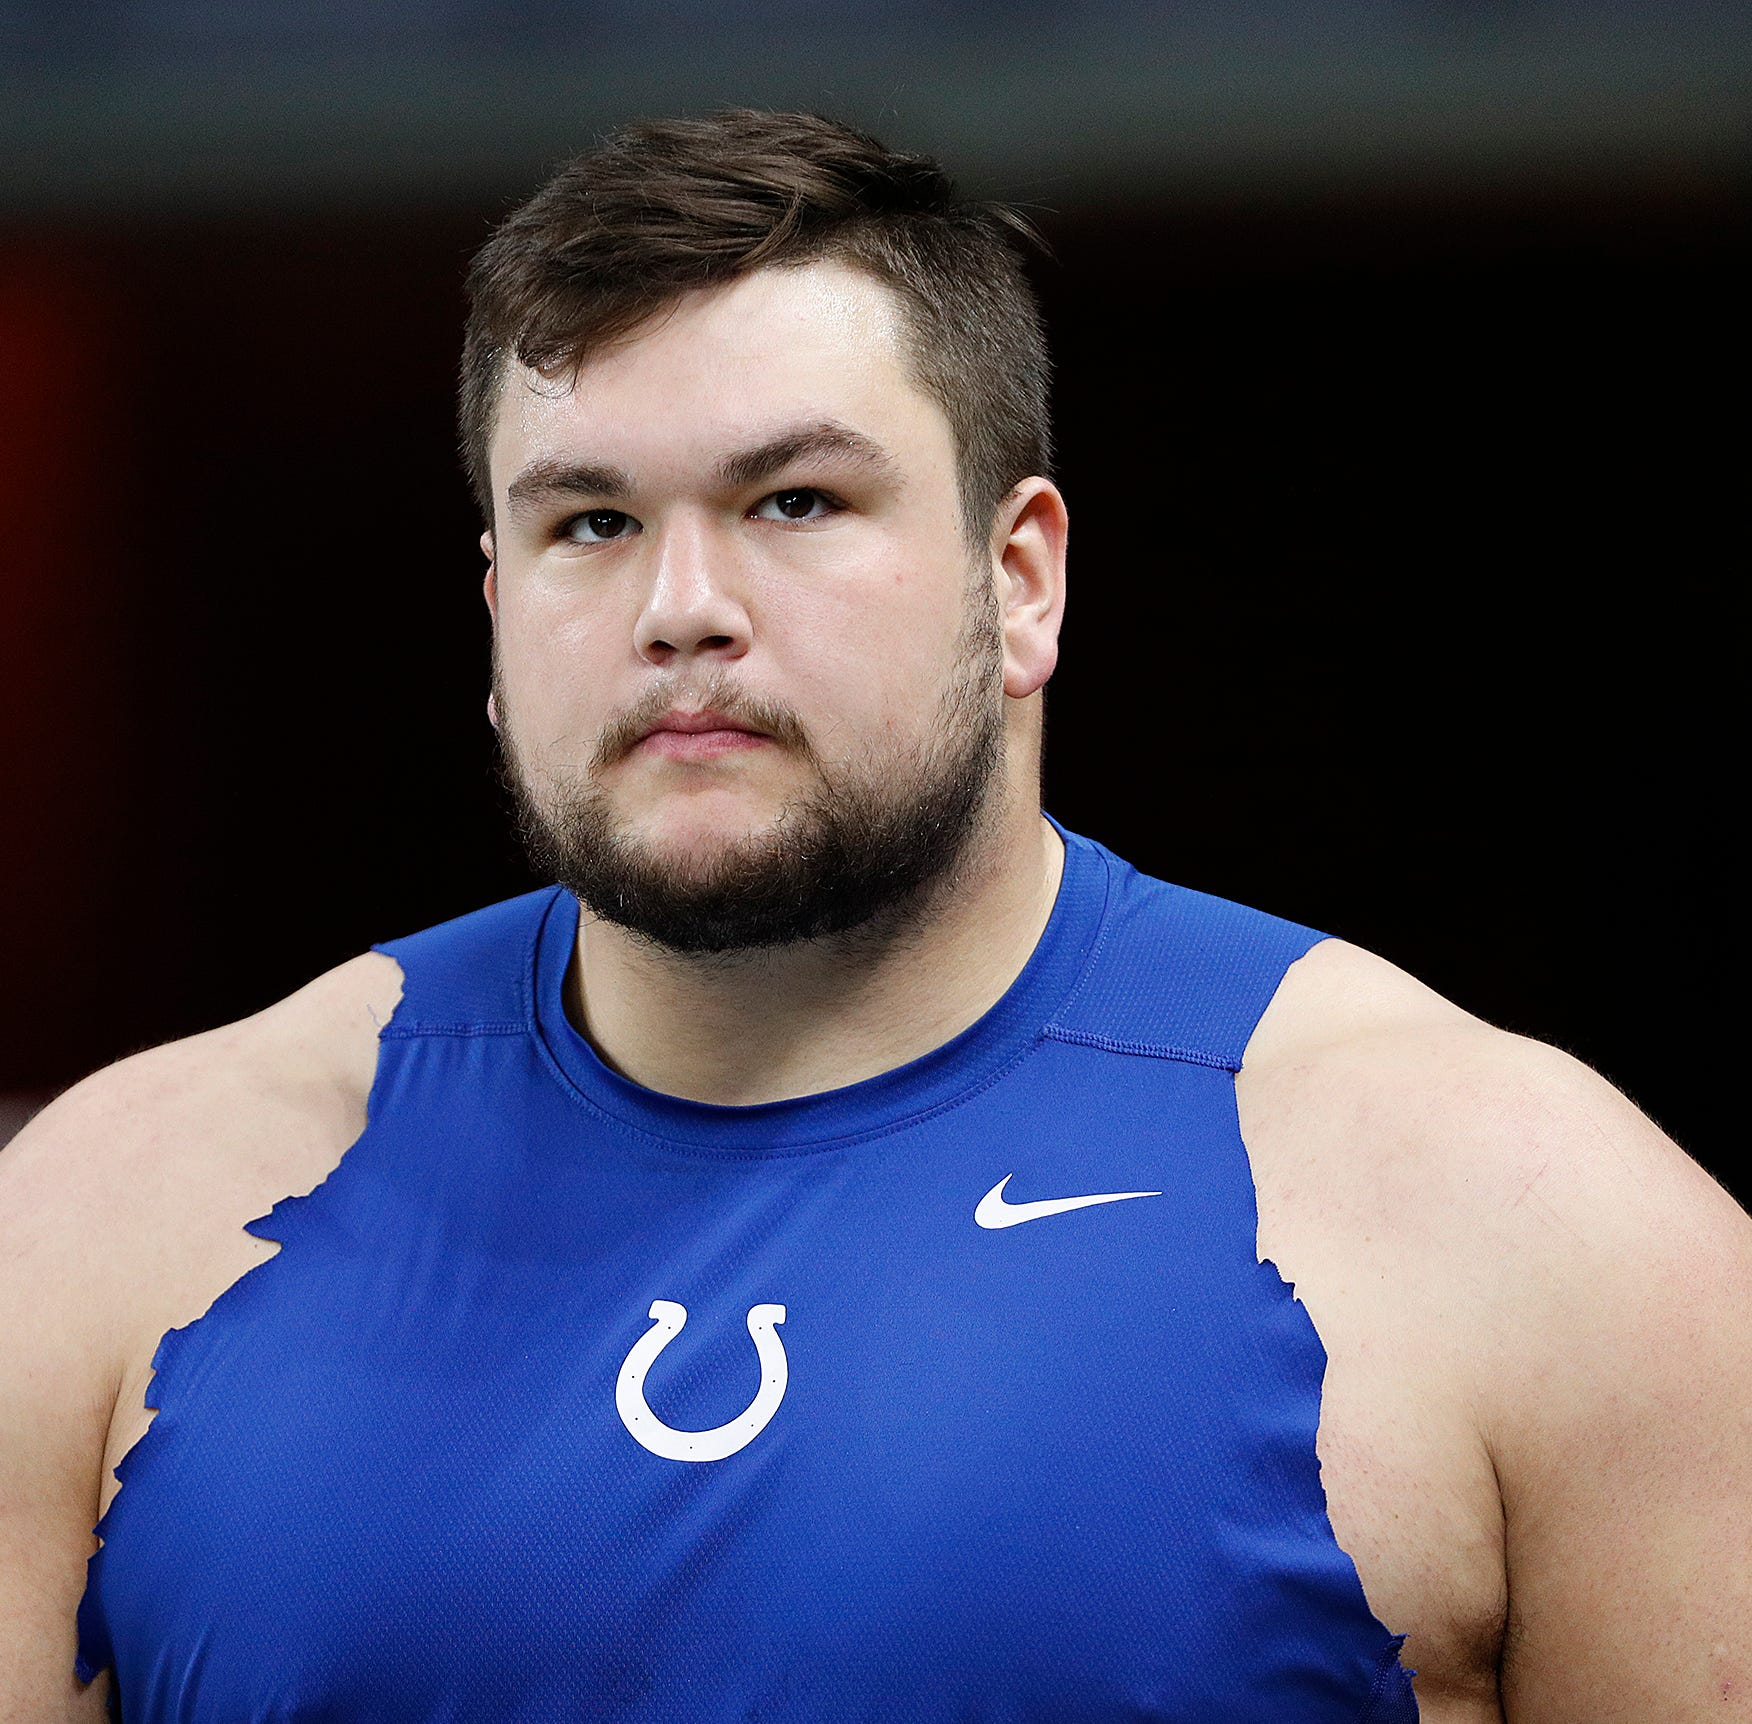 Cardi B approves of Quenton Nelson's impression of her